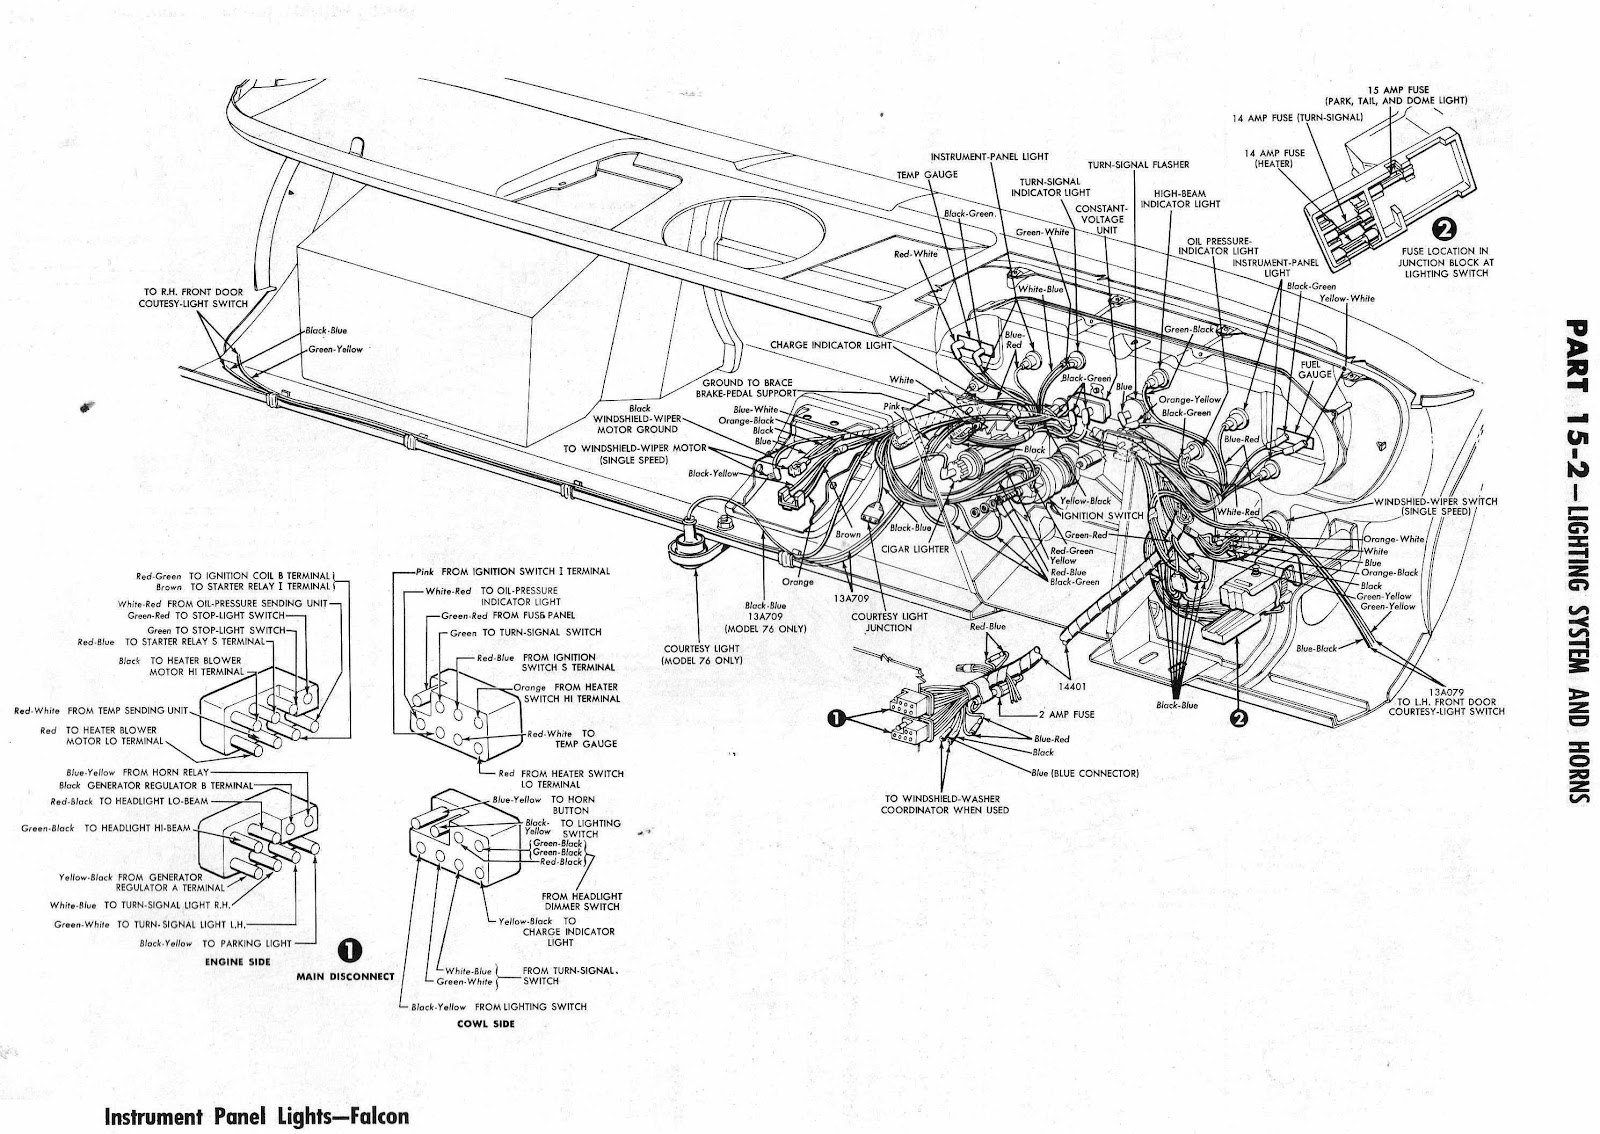 Ford+Falcon+1964+Lighting+System+and+Horns+Wiring+Diagram au falcon wiring diagram falcon guide \u2022 wiring diagrams j squared co  at pacquiaovsvargaslive.co